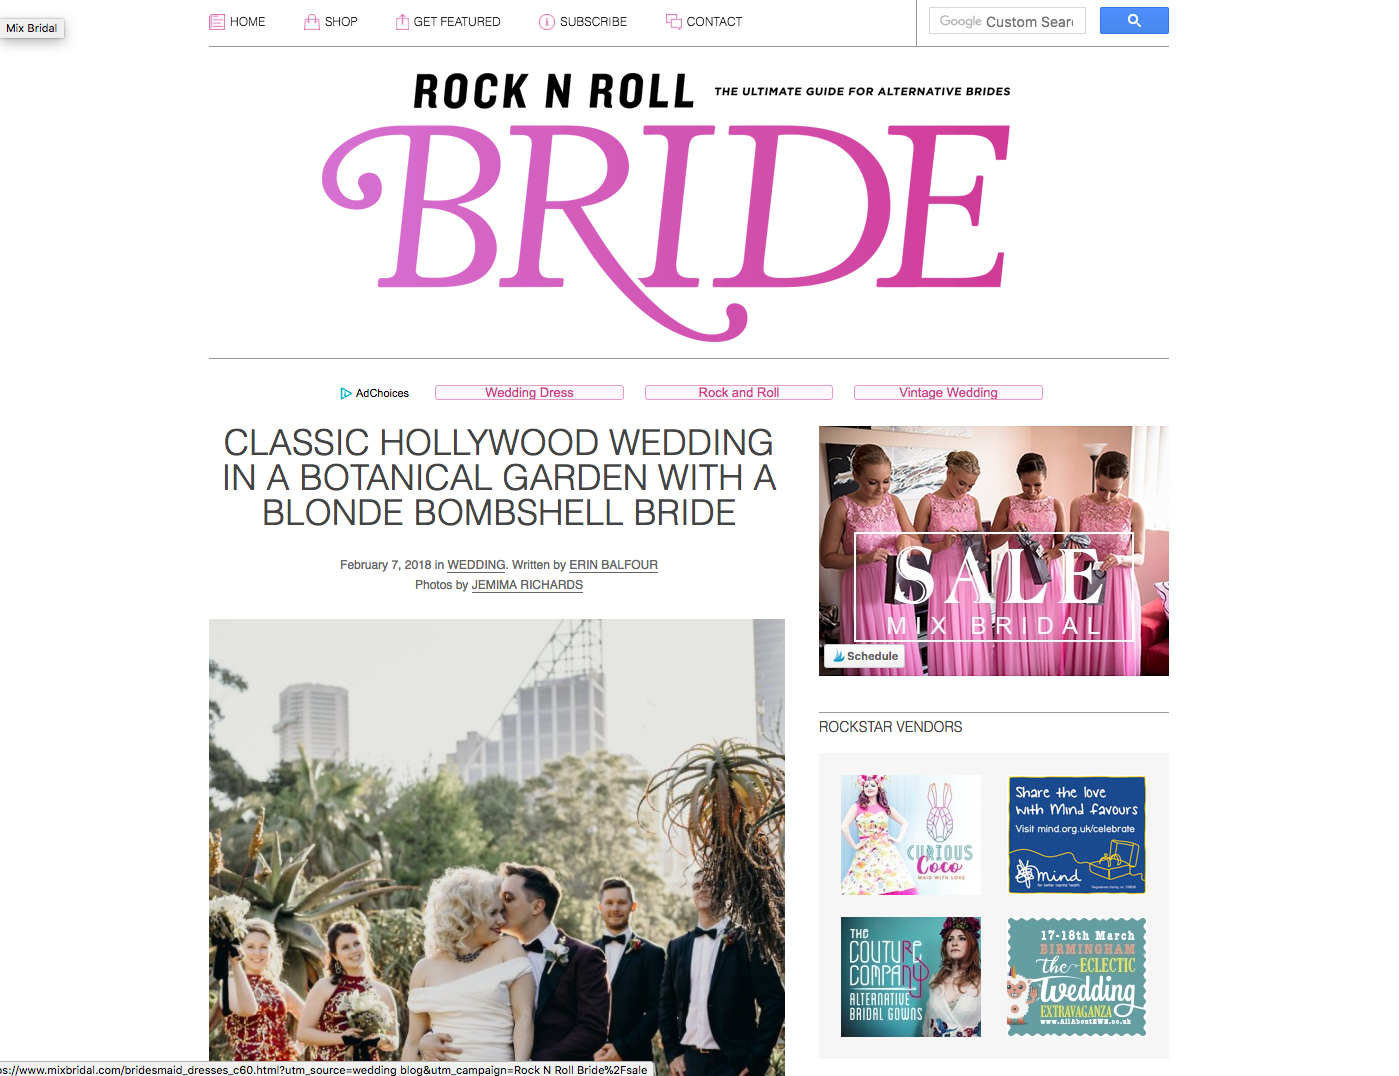 Simple website navigation on Rock N Roll Bride